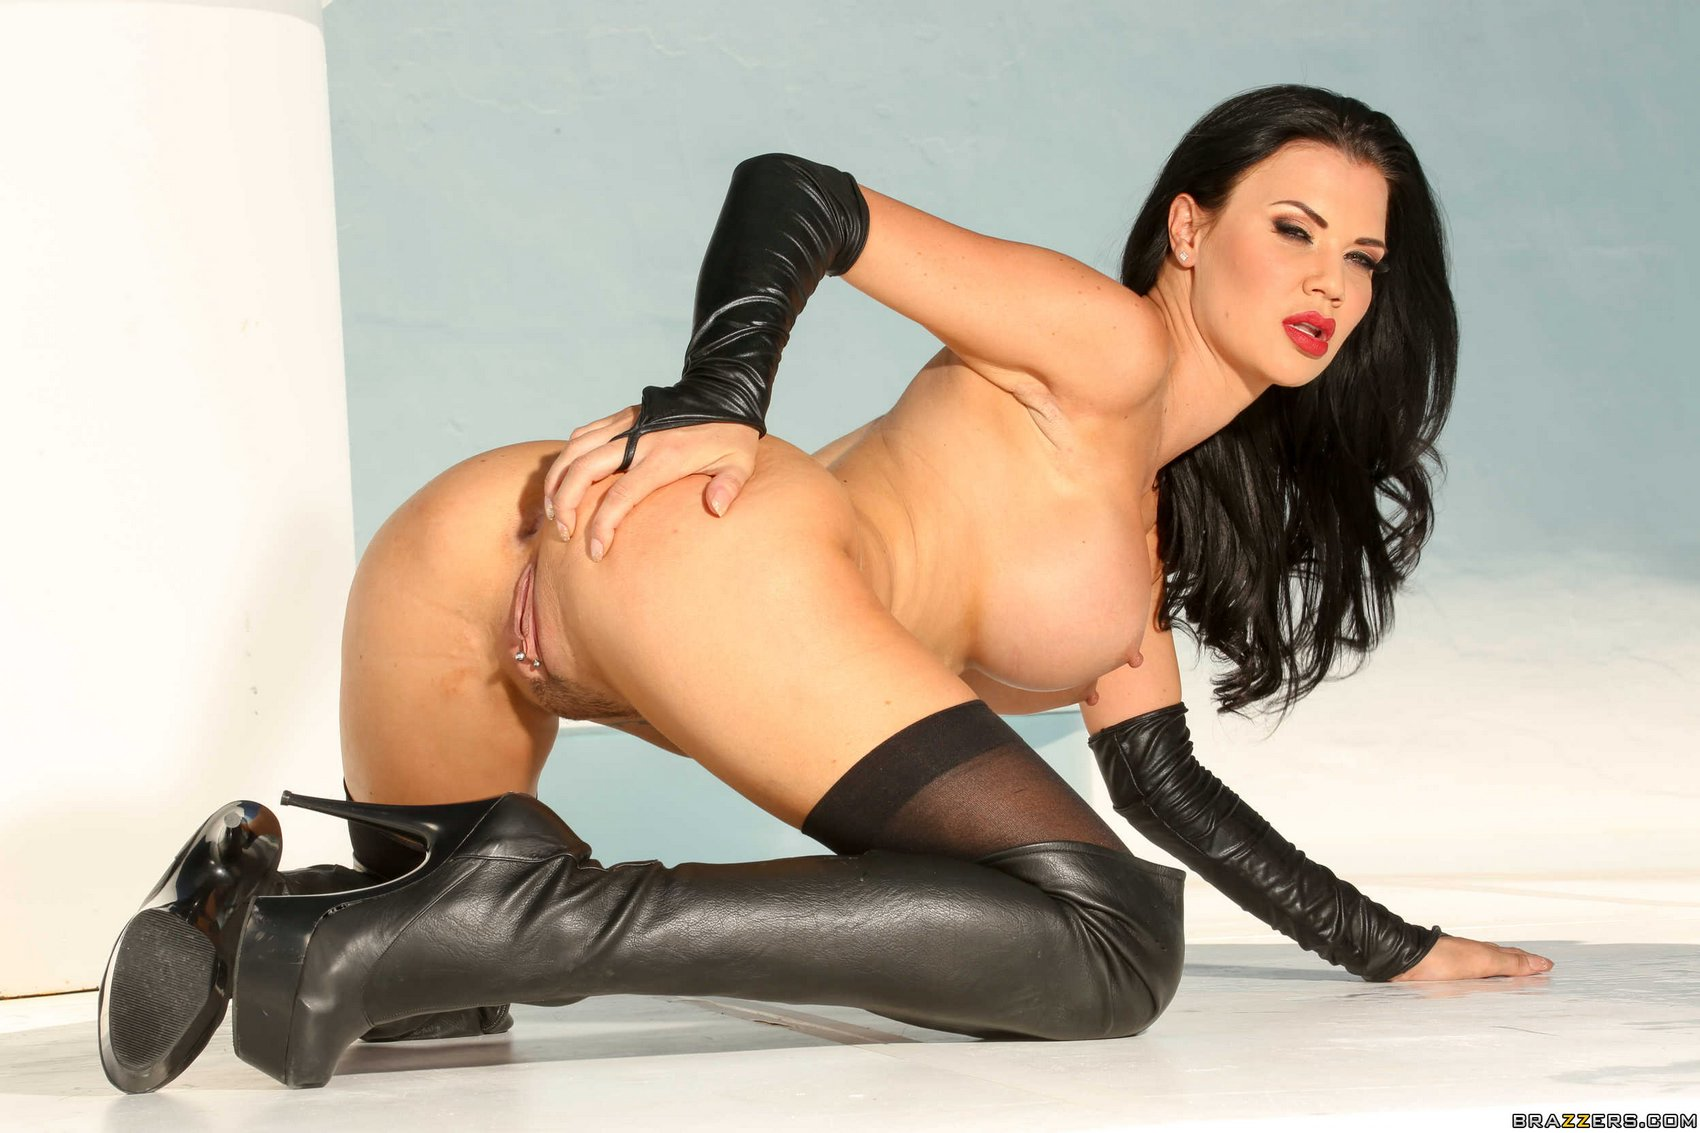 Jasmine Jae in Free Webcam Show This Friday on